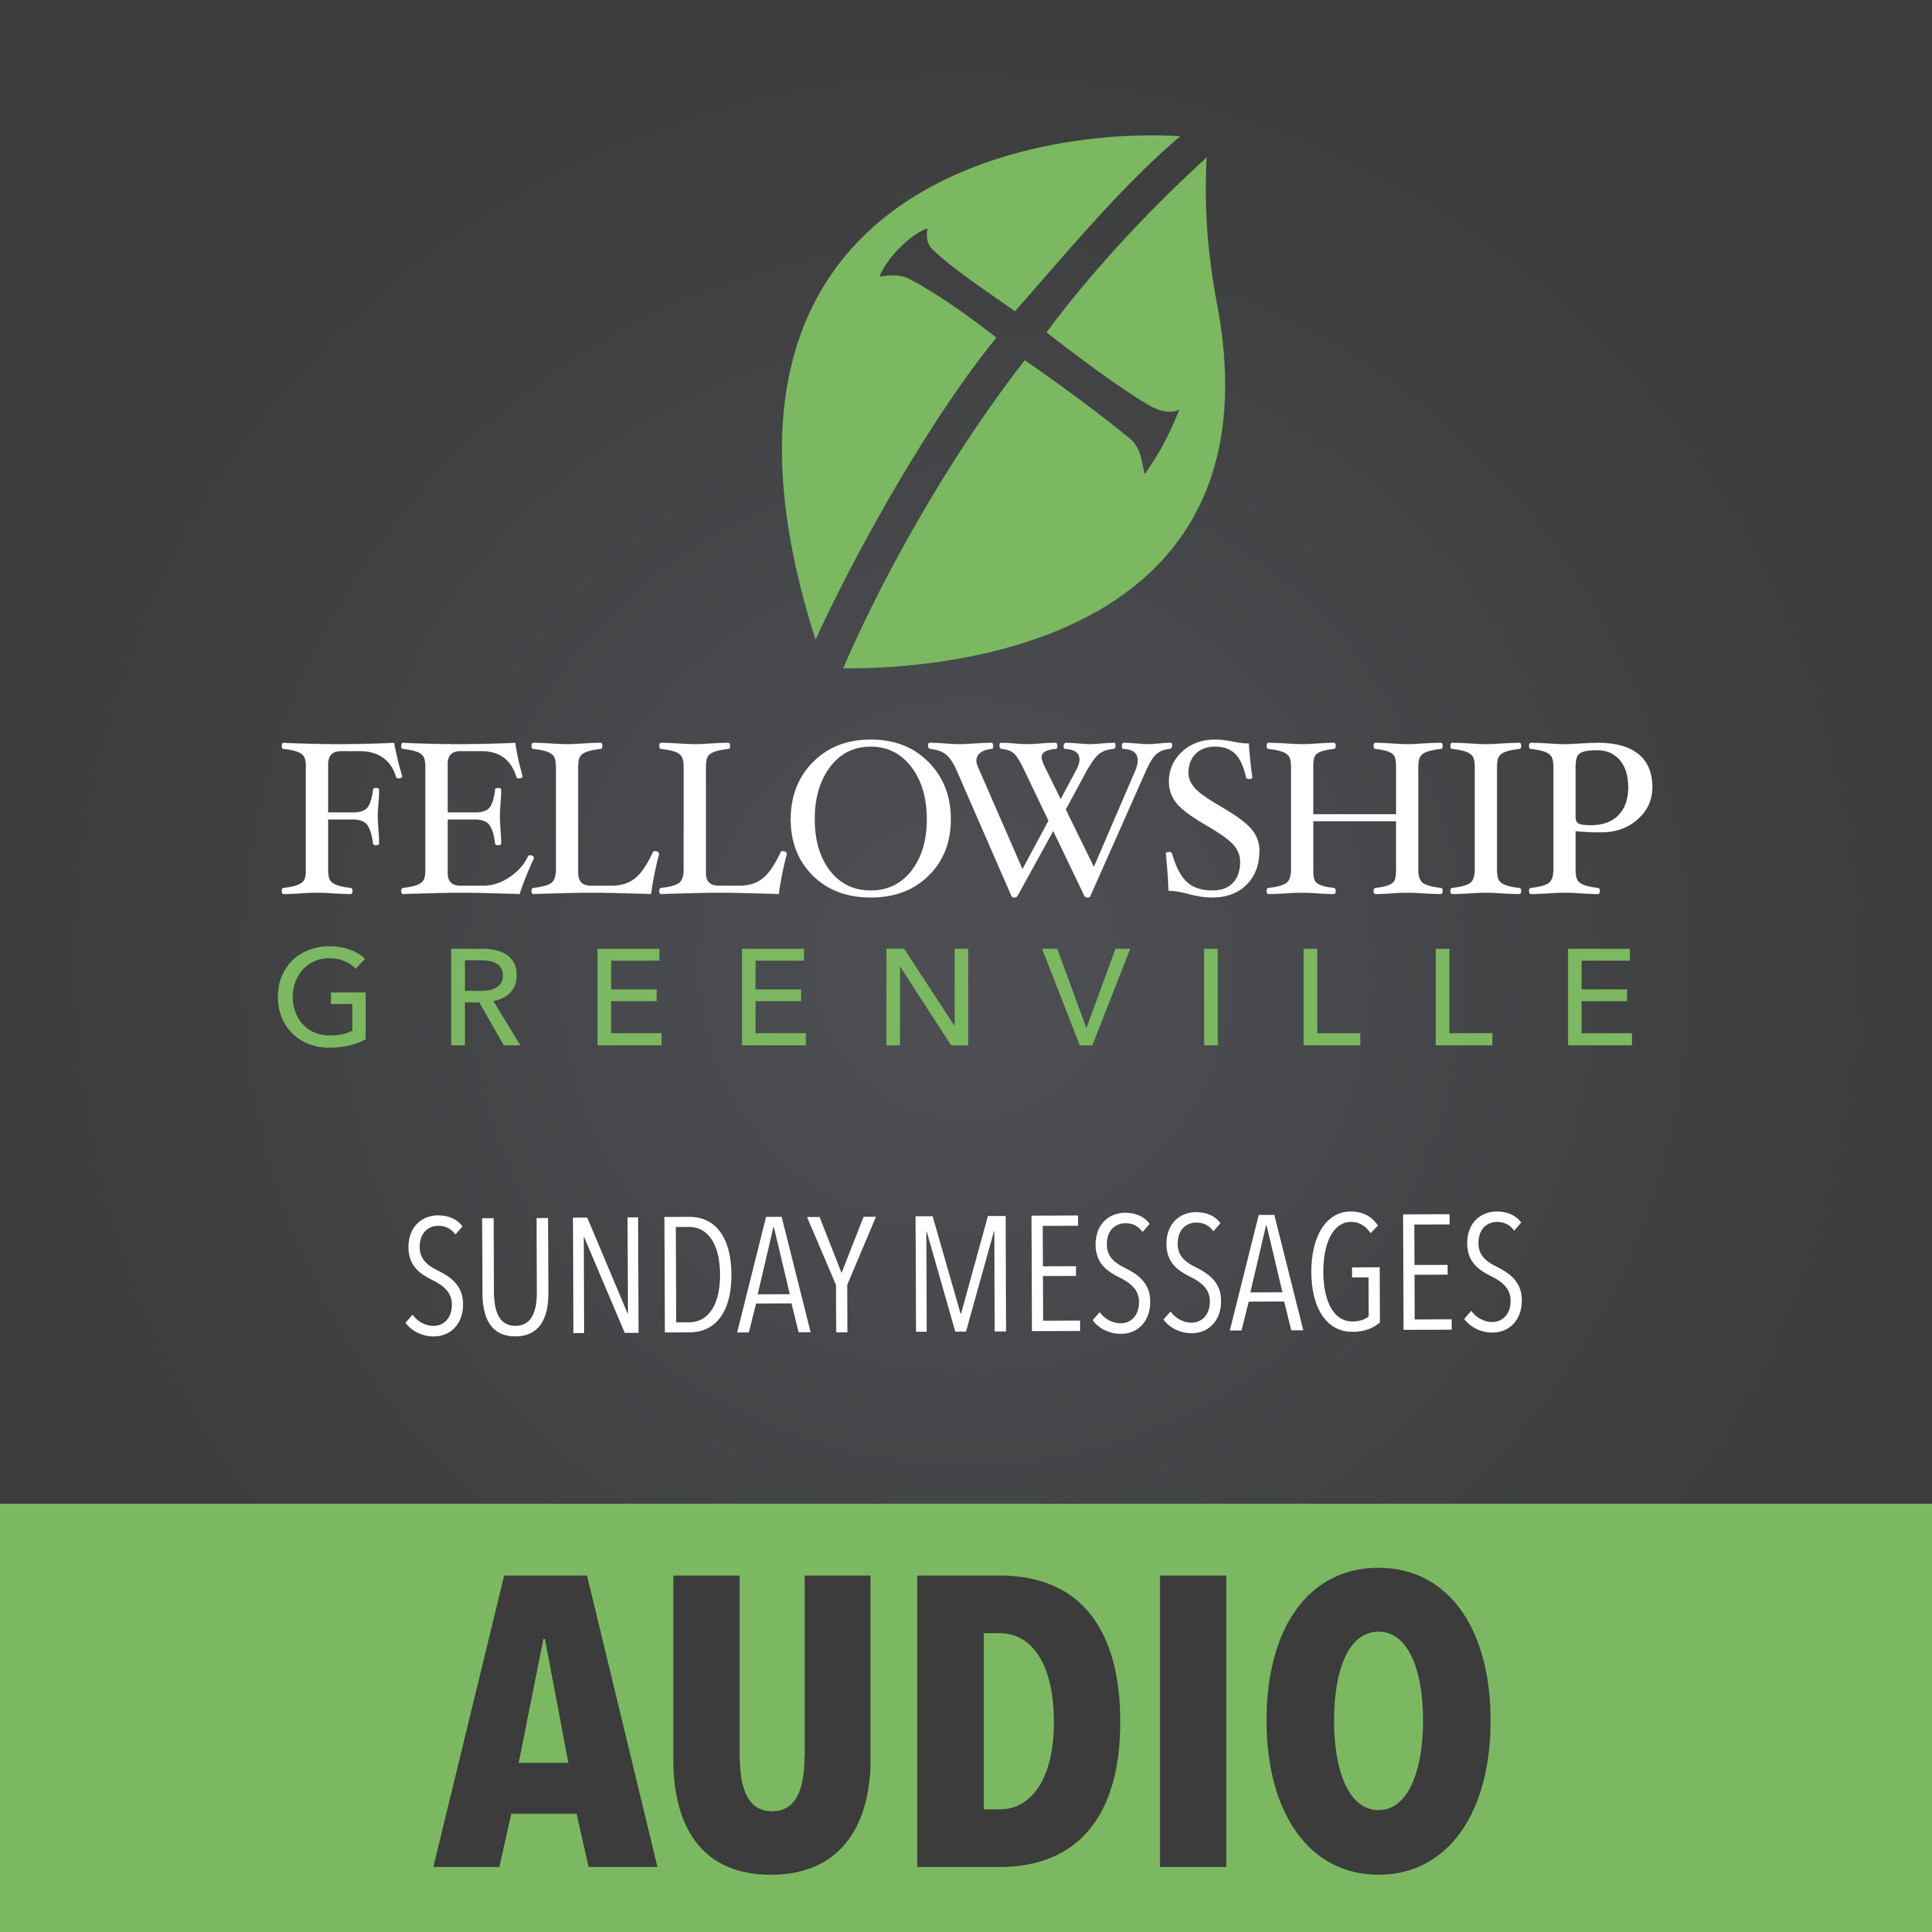 Fellowship Greenville: Sunday Morning Sermons (Audio)